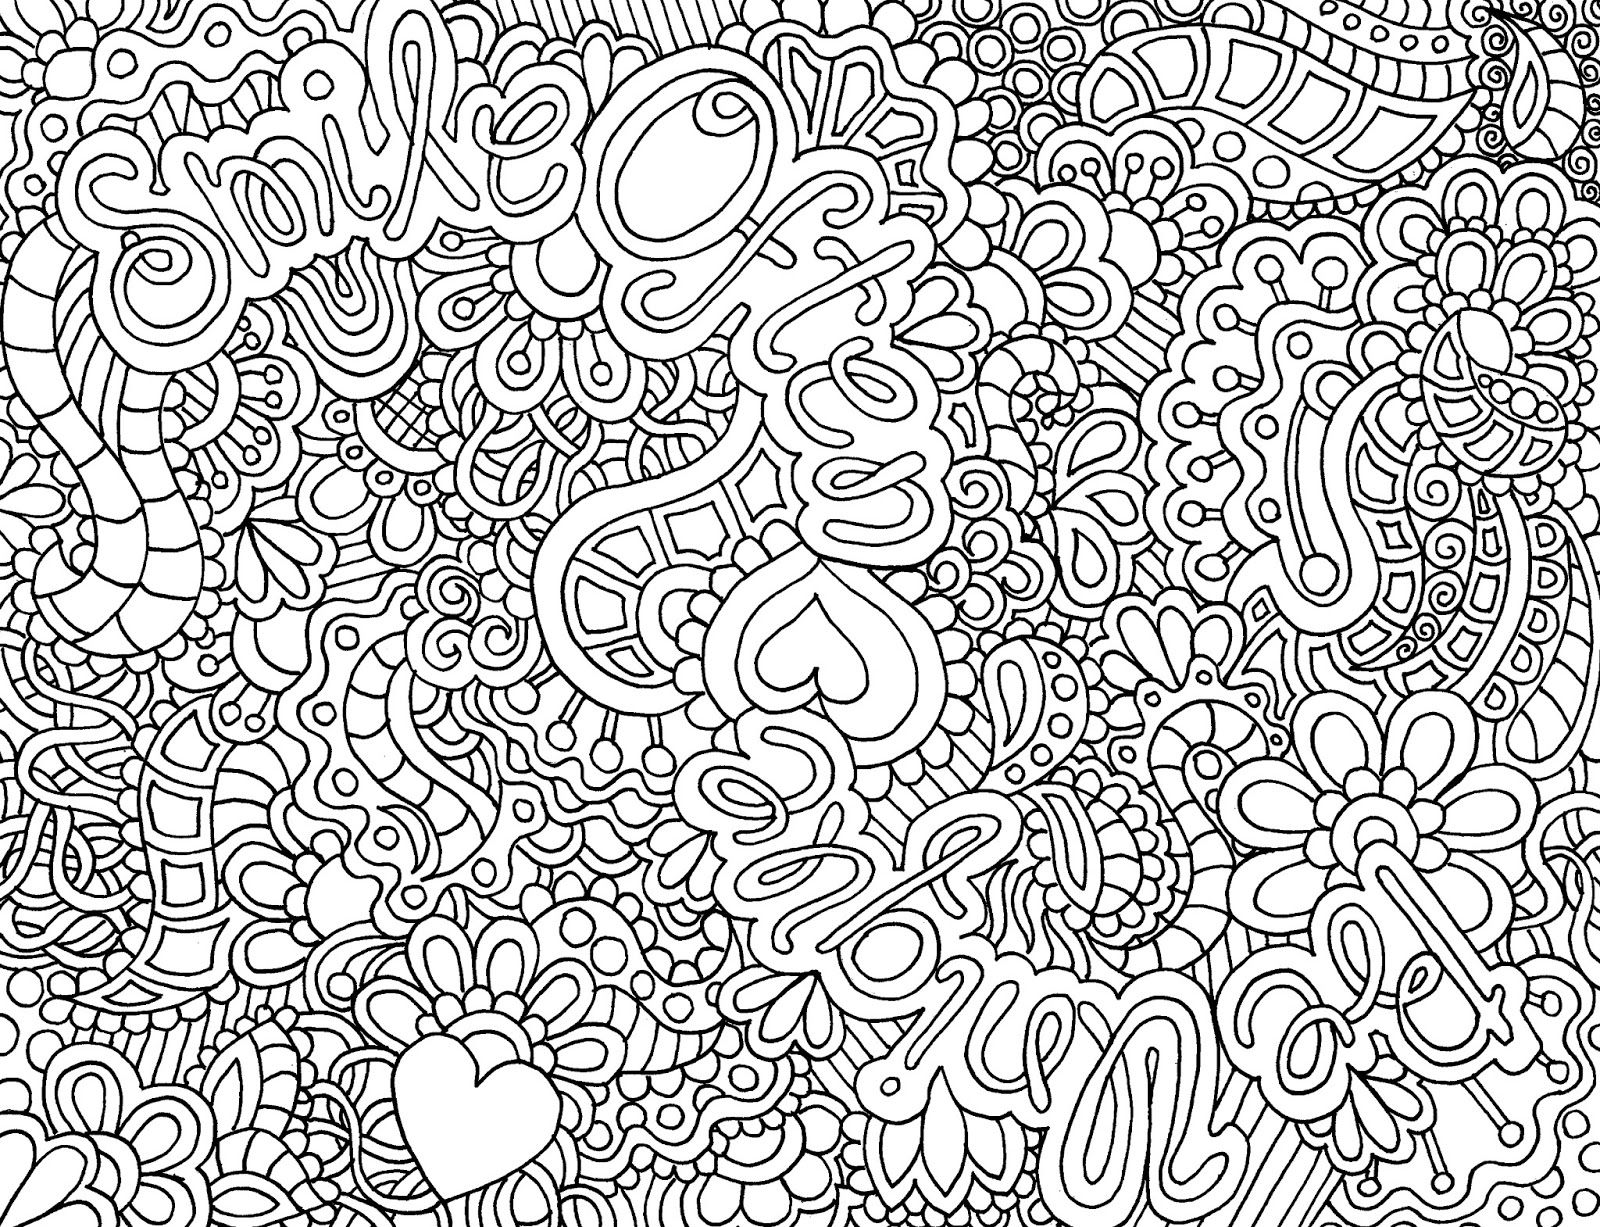 Difficult Abstract Coloring Pages Another Cute Zendoodle That You Can Find In My Coloring Pages For Teenagers Abstract Coloring Pages Detailed Coloring Pages